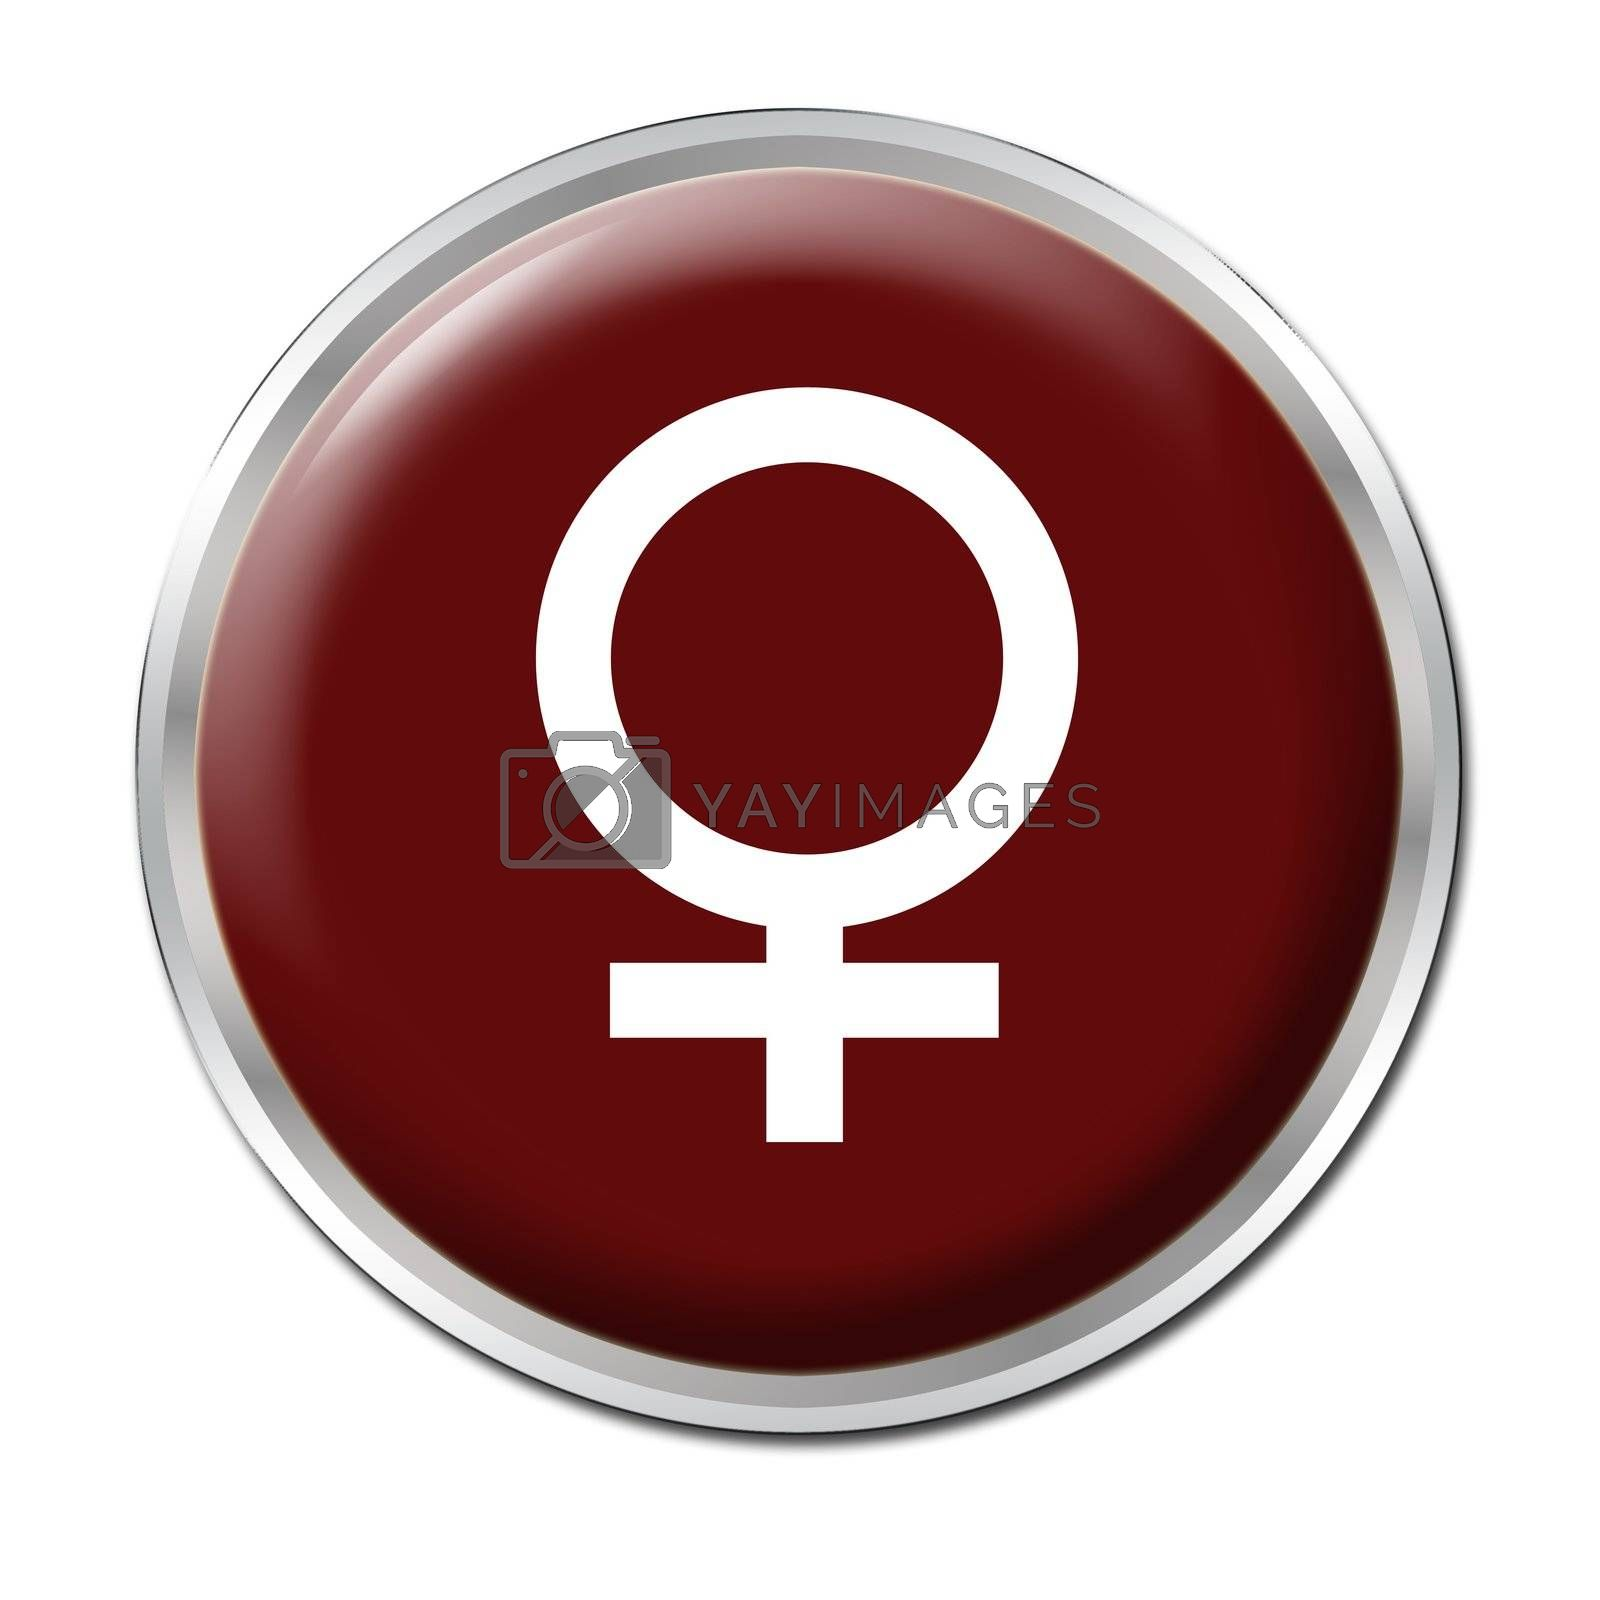 red button with the symbol of a woman